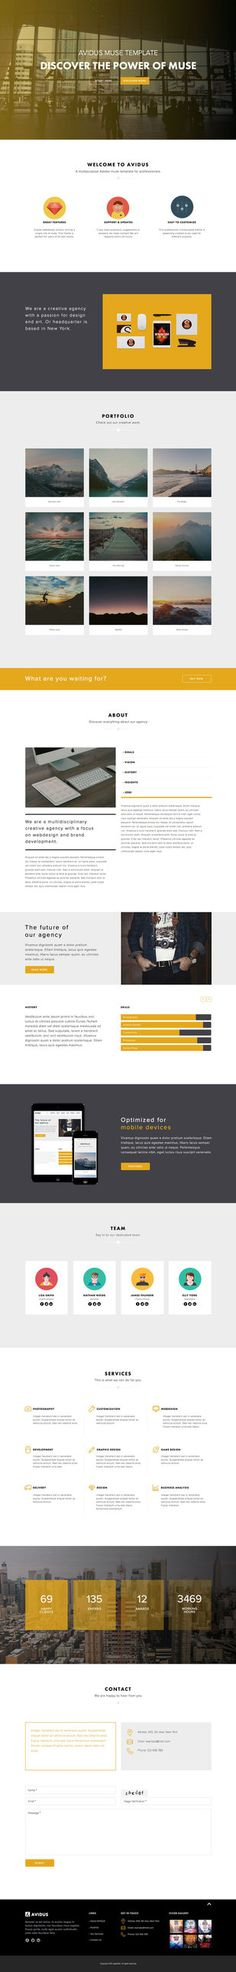 Ease Theme Adobe Muse Template Product Image Ecommerce Templates